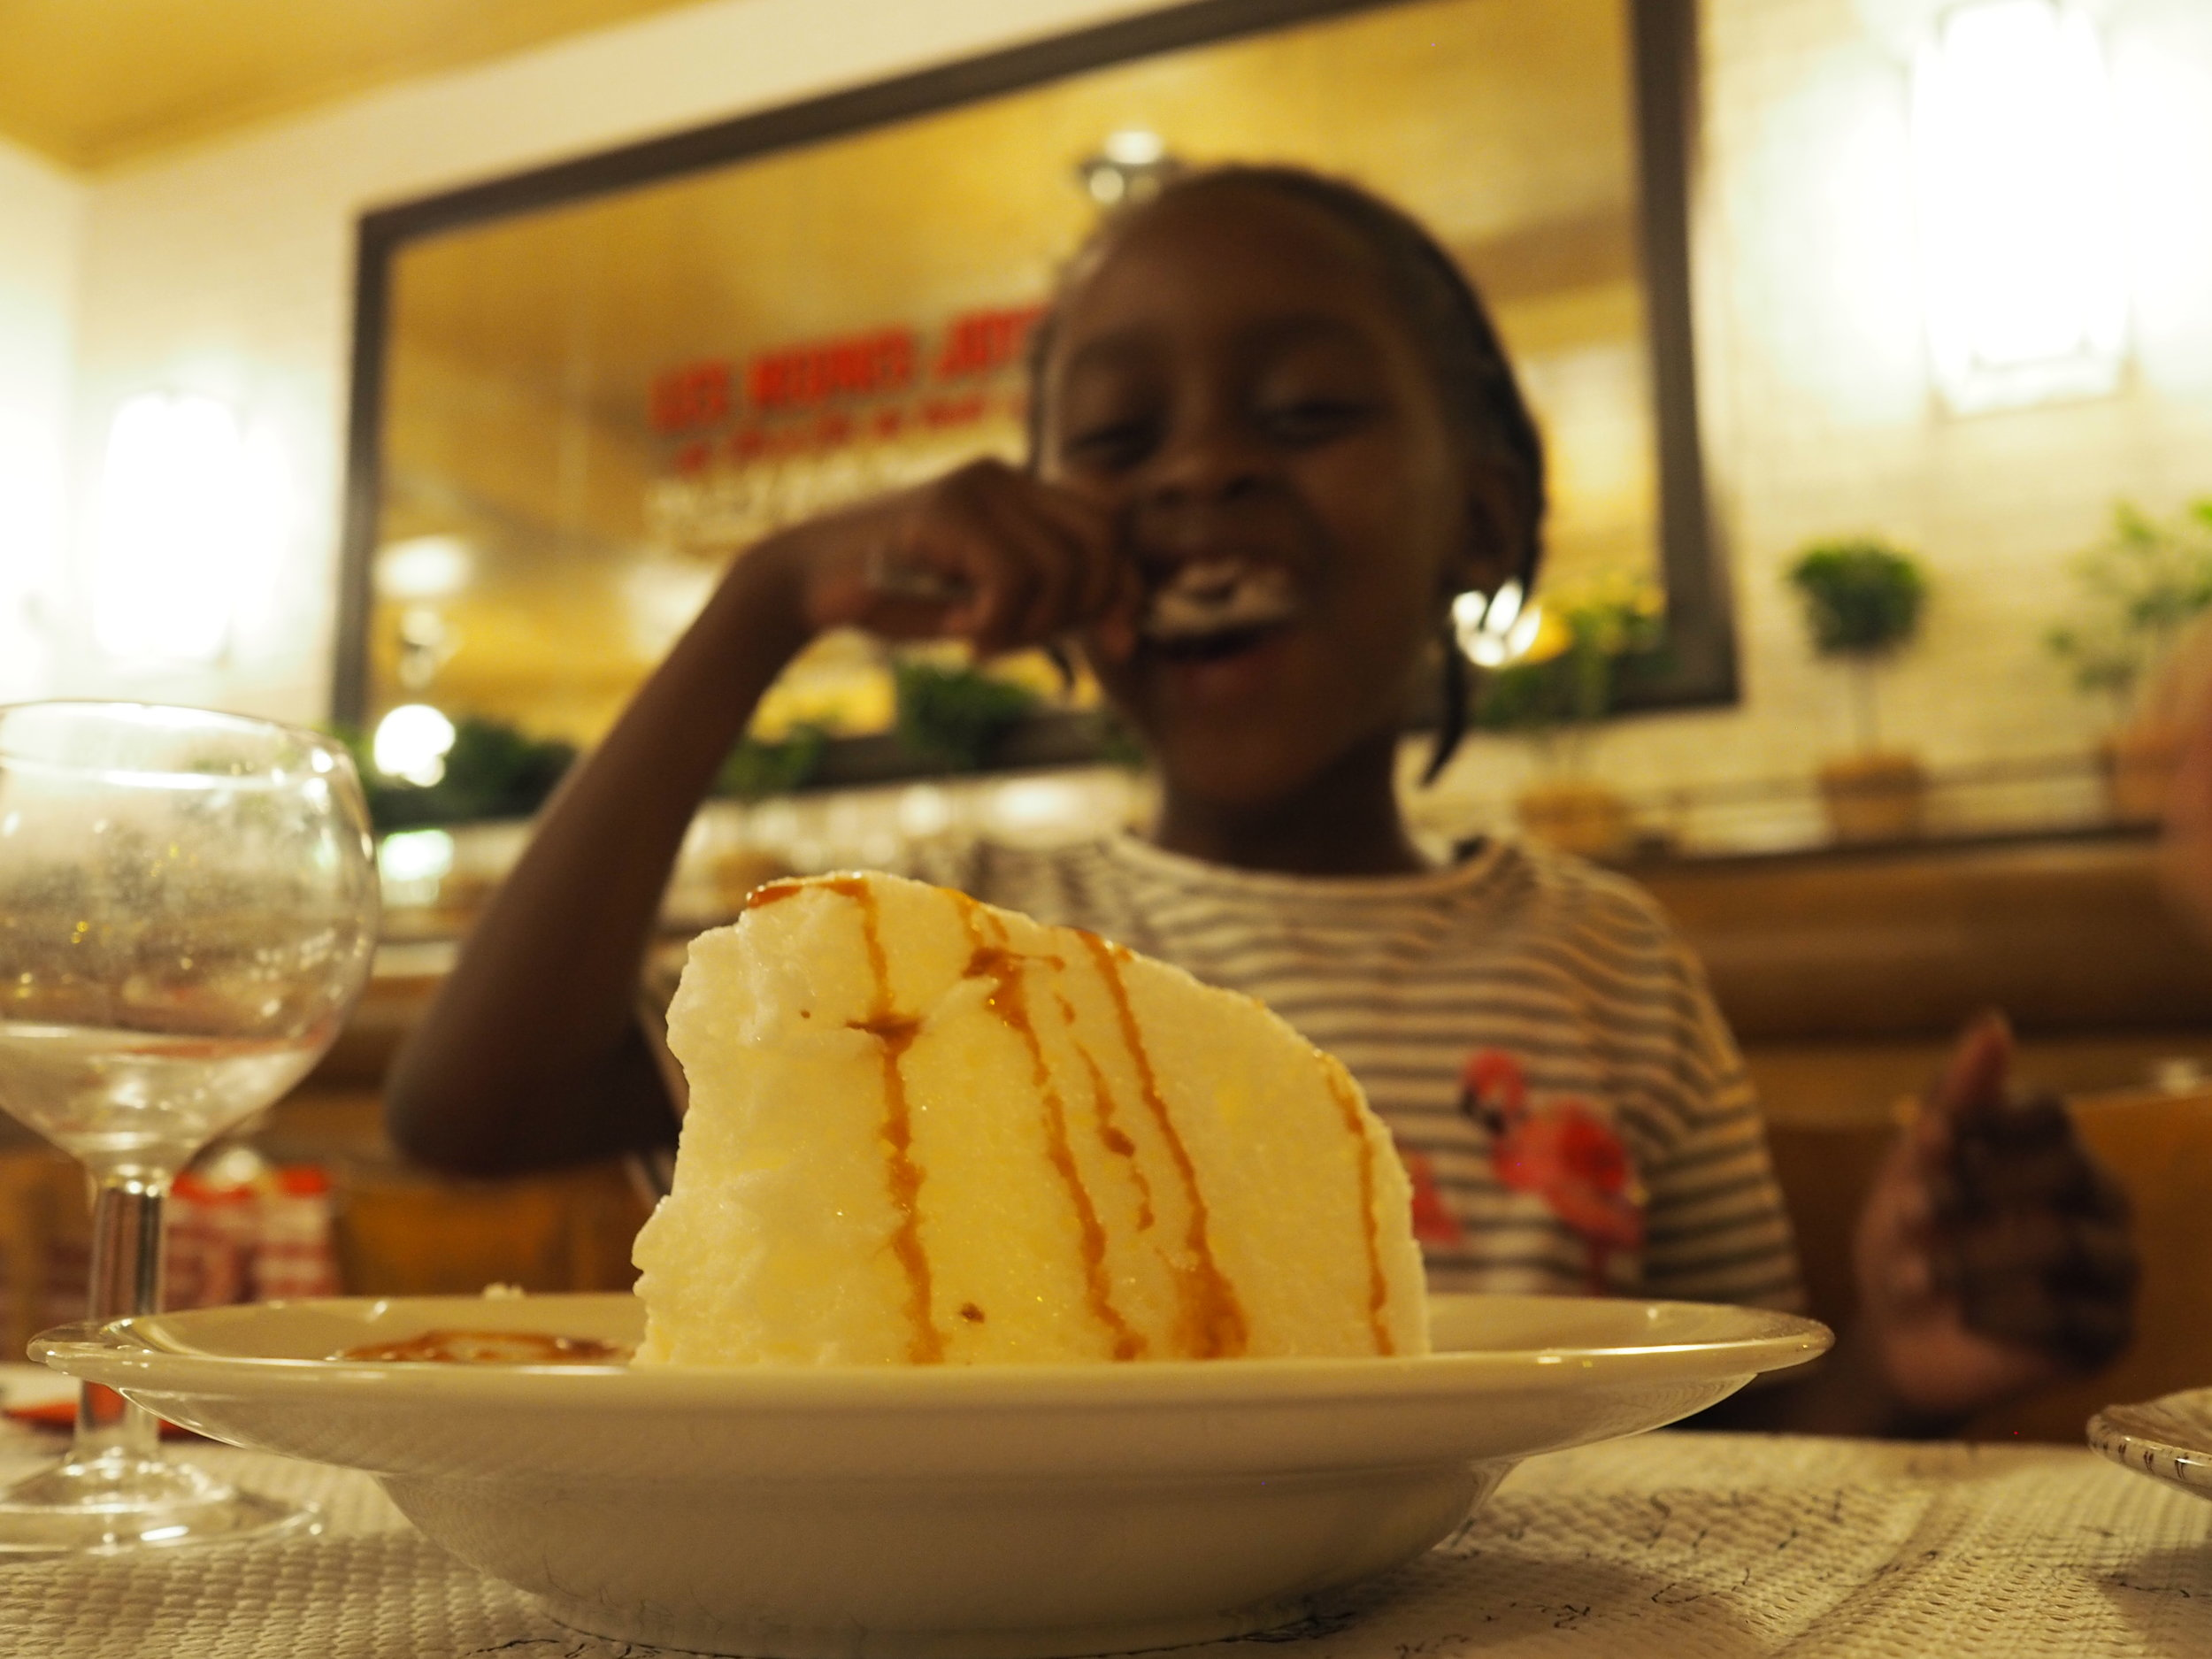 the only thing that would've topped morayo-hope's joy in this moment of eating this dessert is if a unicorn flew out of it.